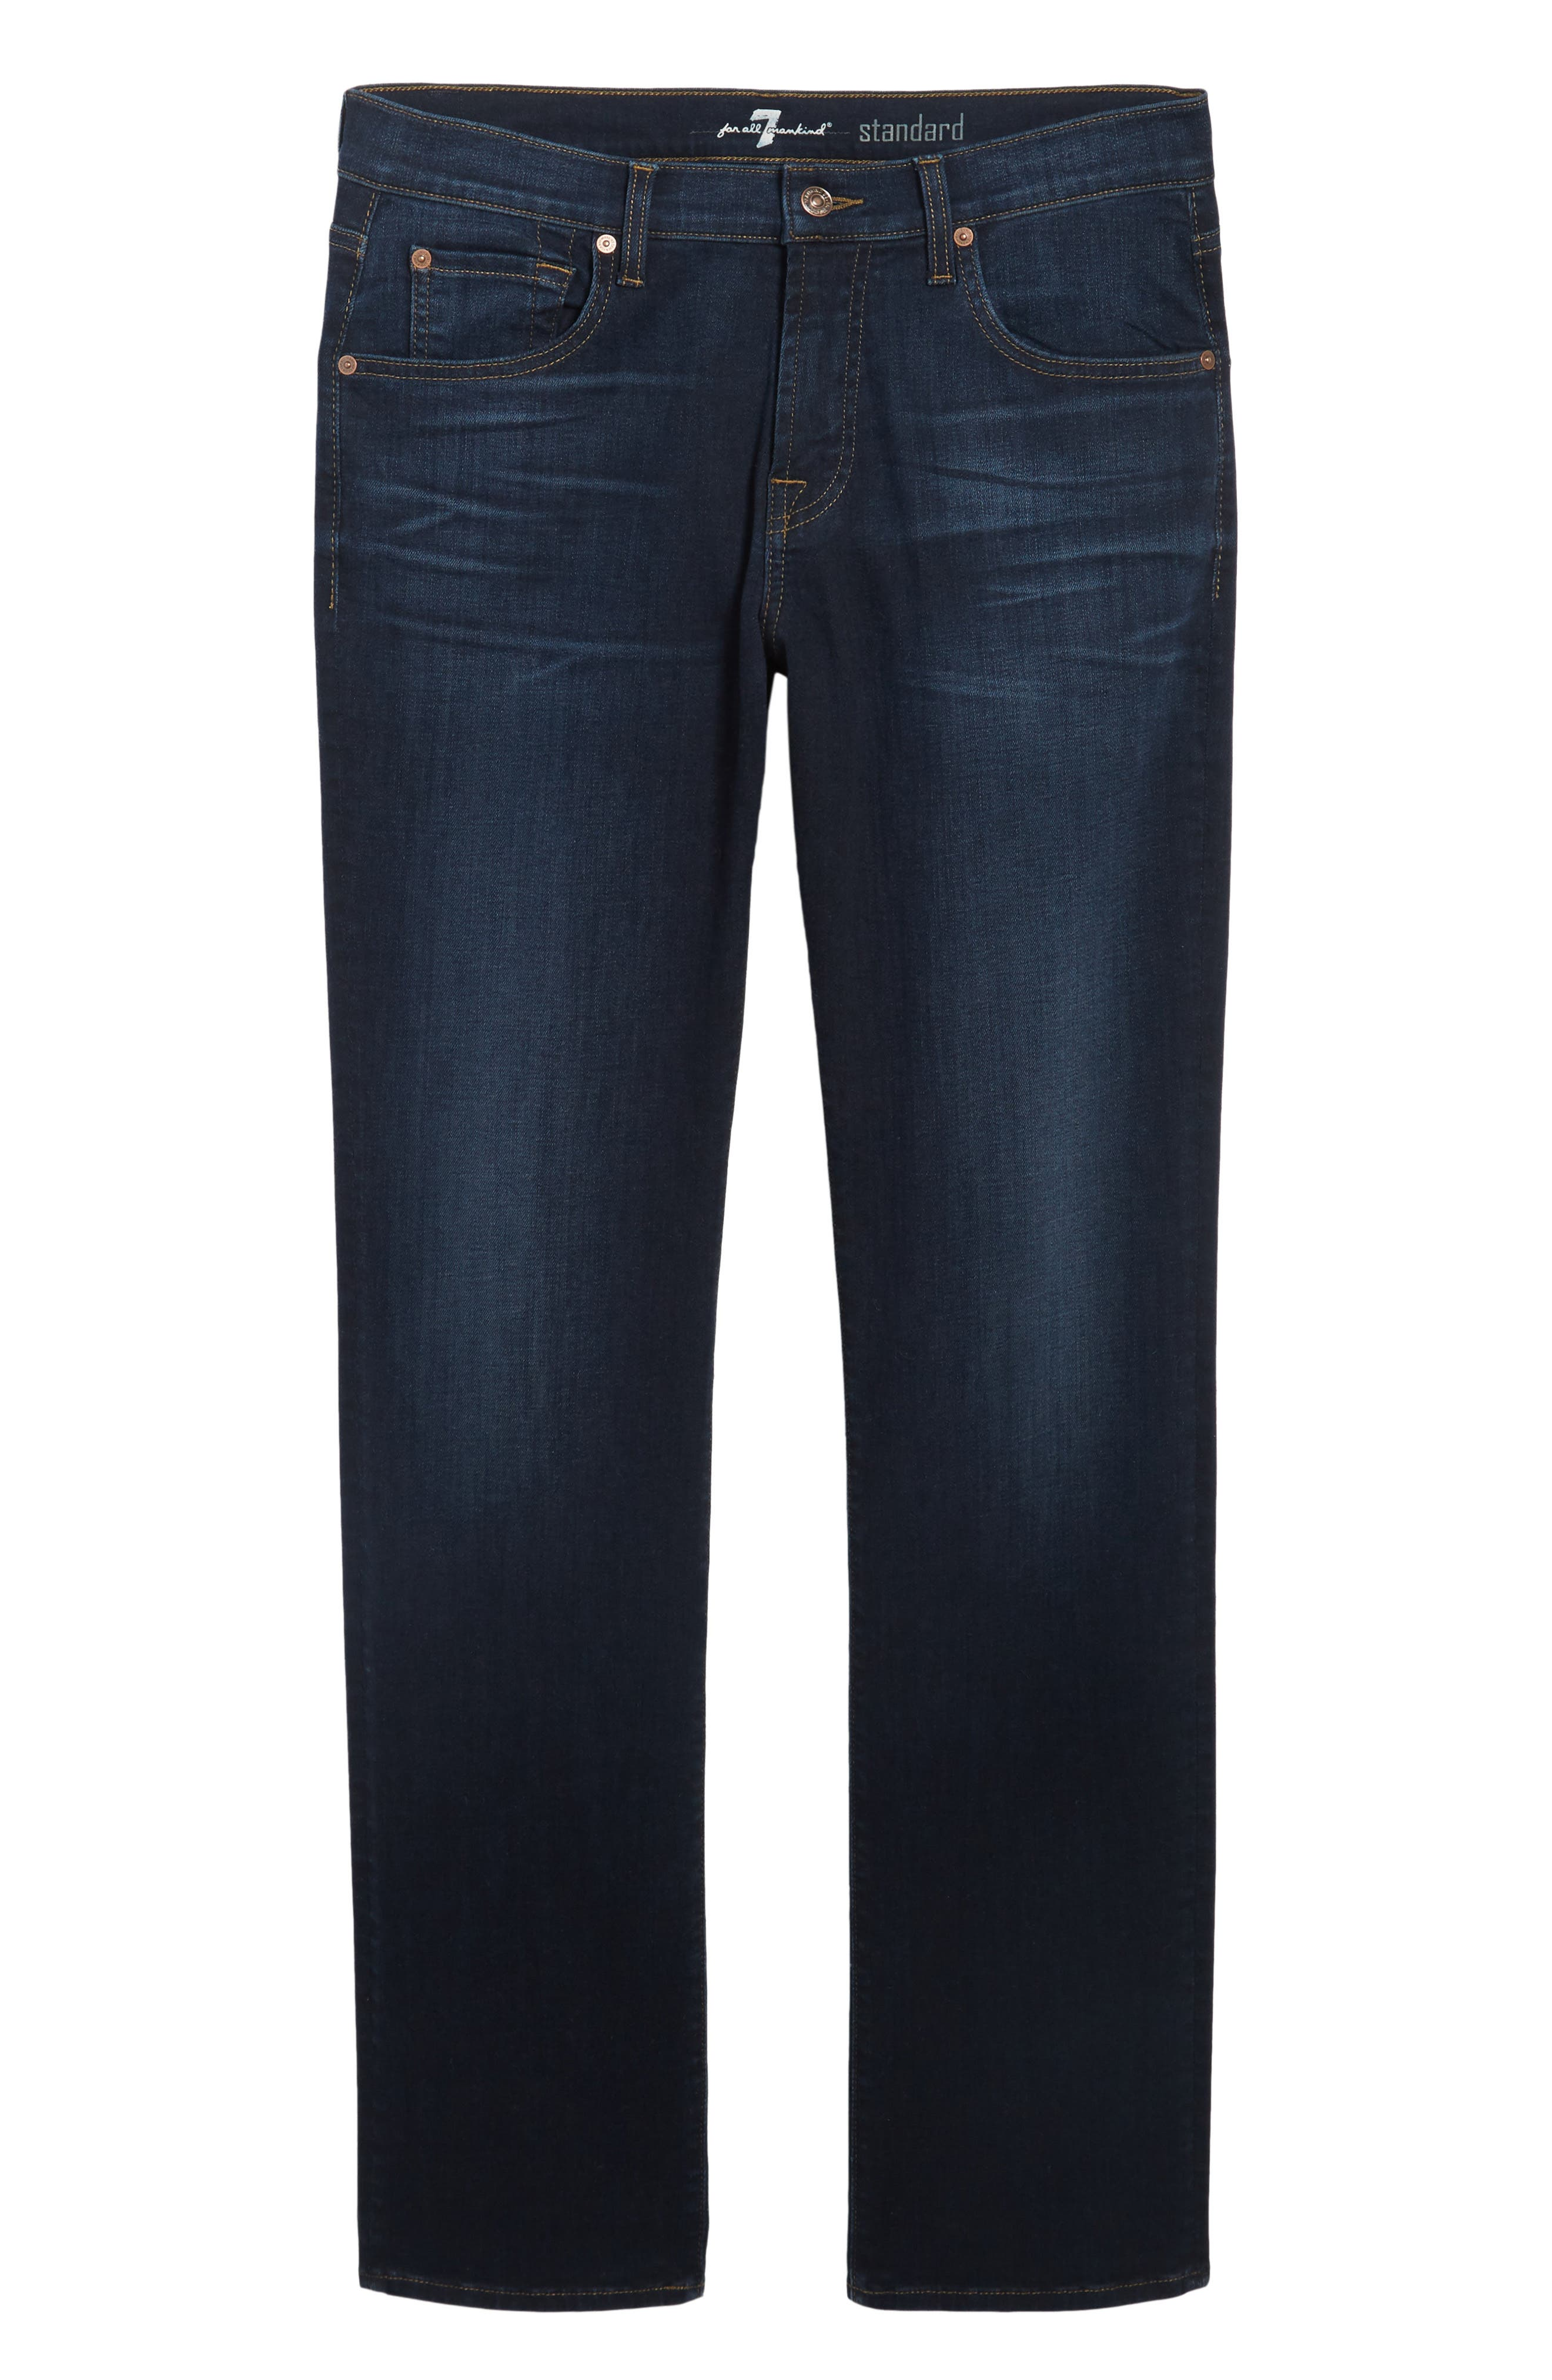 Standard Straight Fit Jeans,                             Alternate thumbnail 6, color,                             400